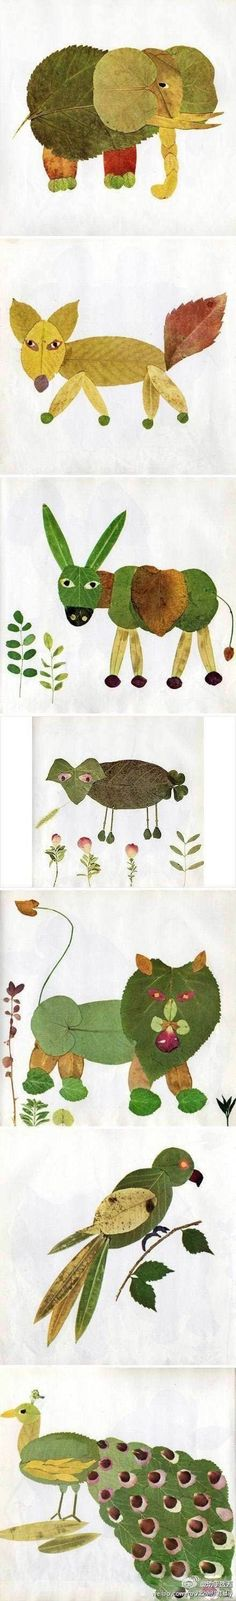 Fall art project - making animal pictures out of leaves. Cannot wait to try this!